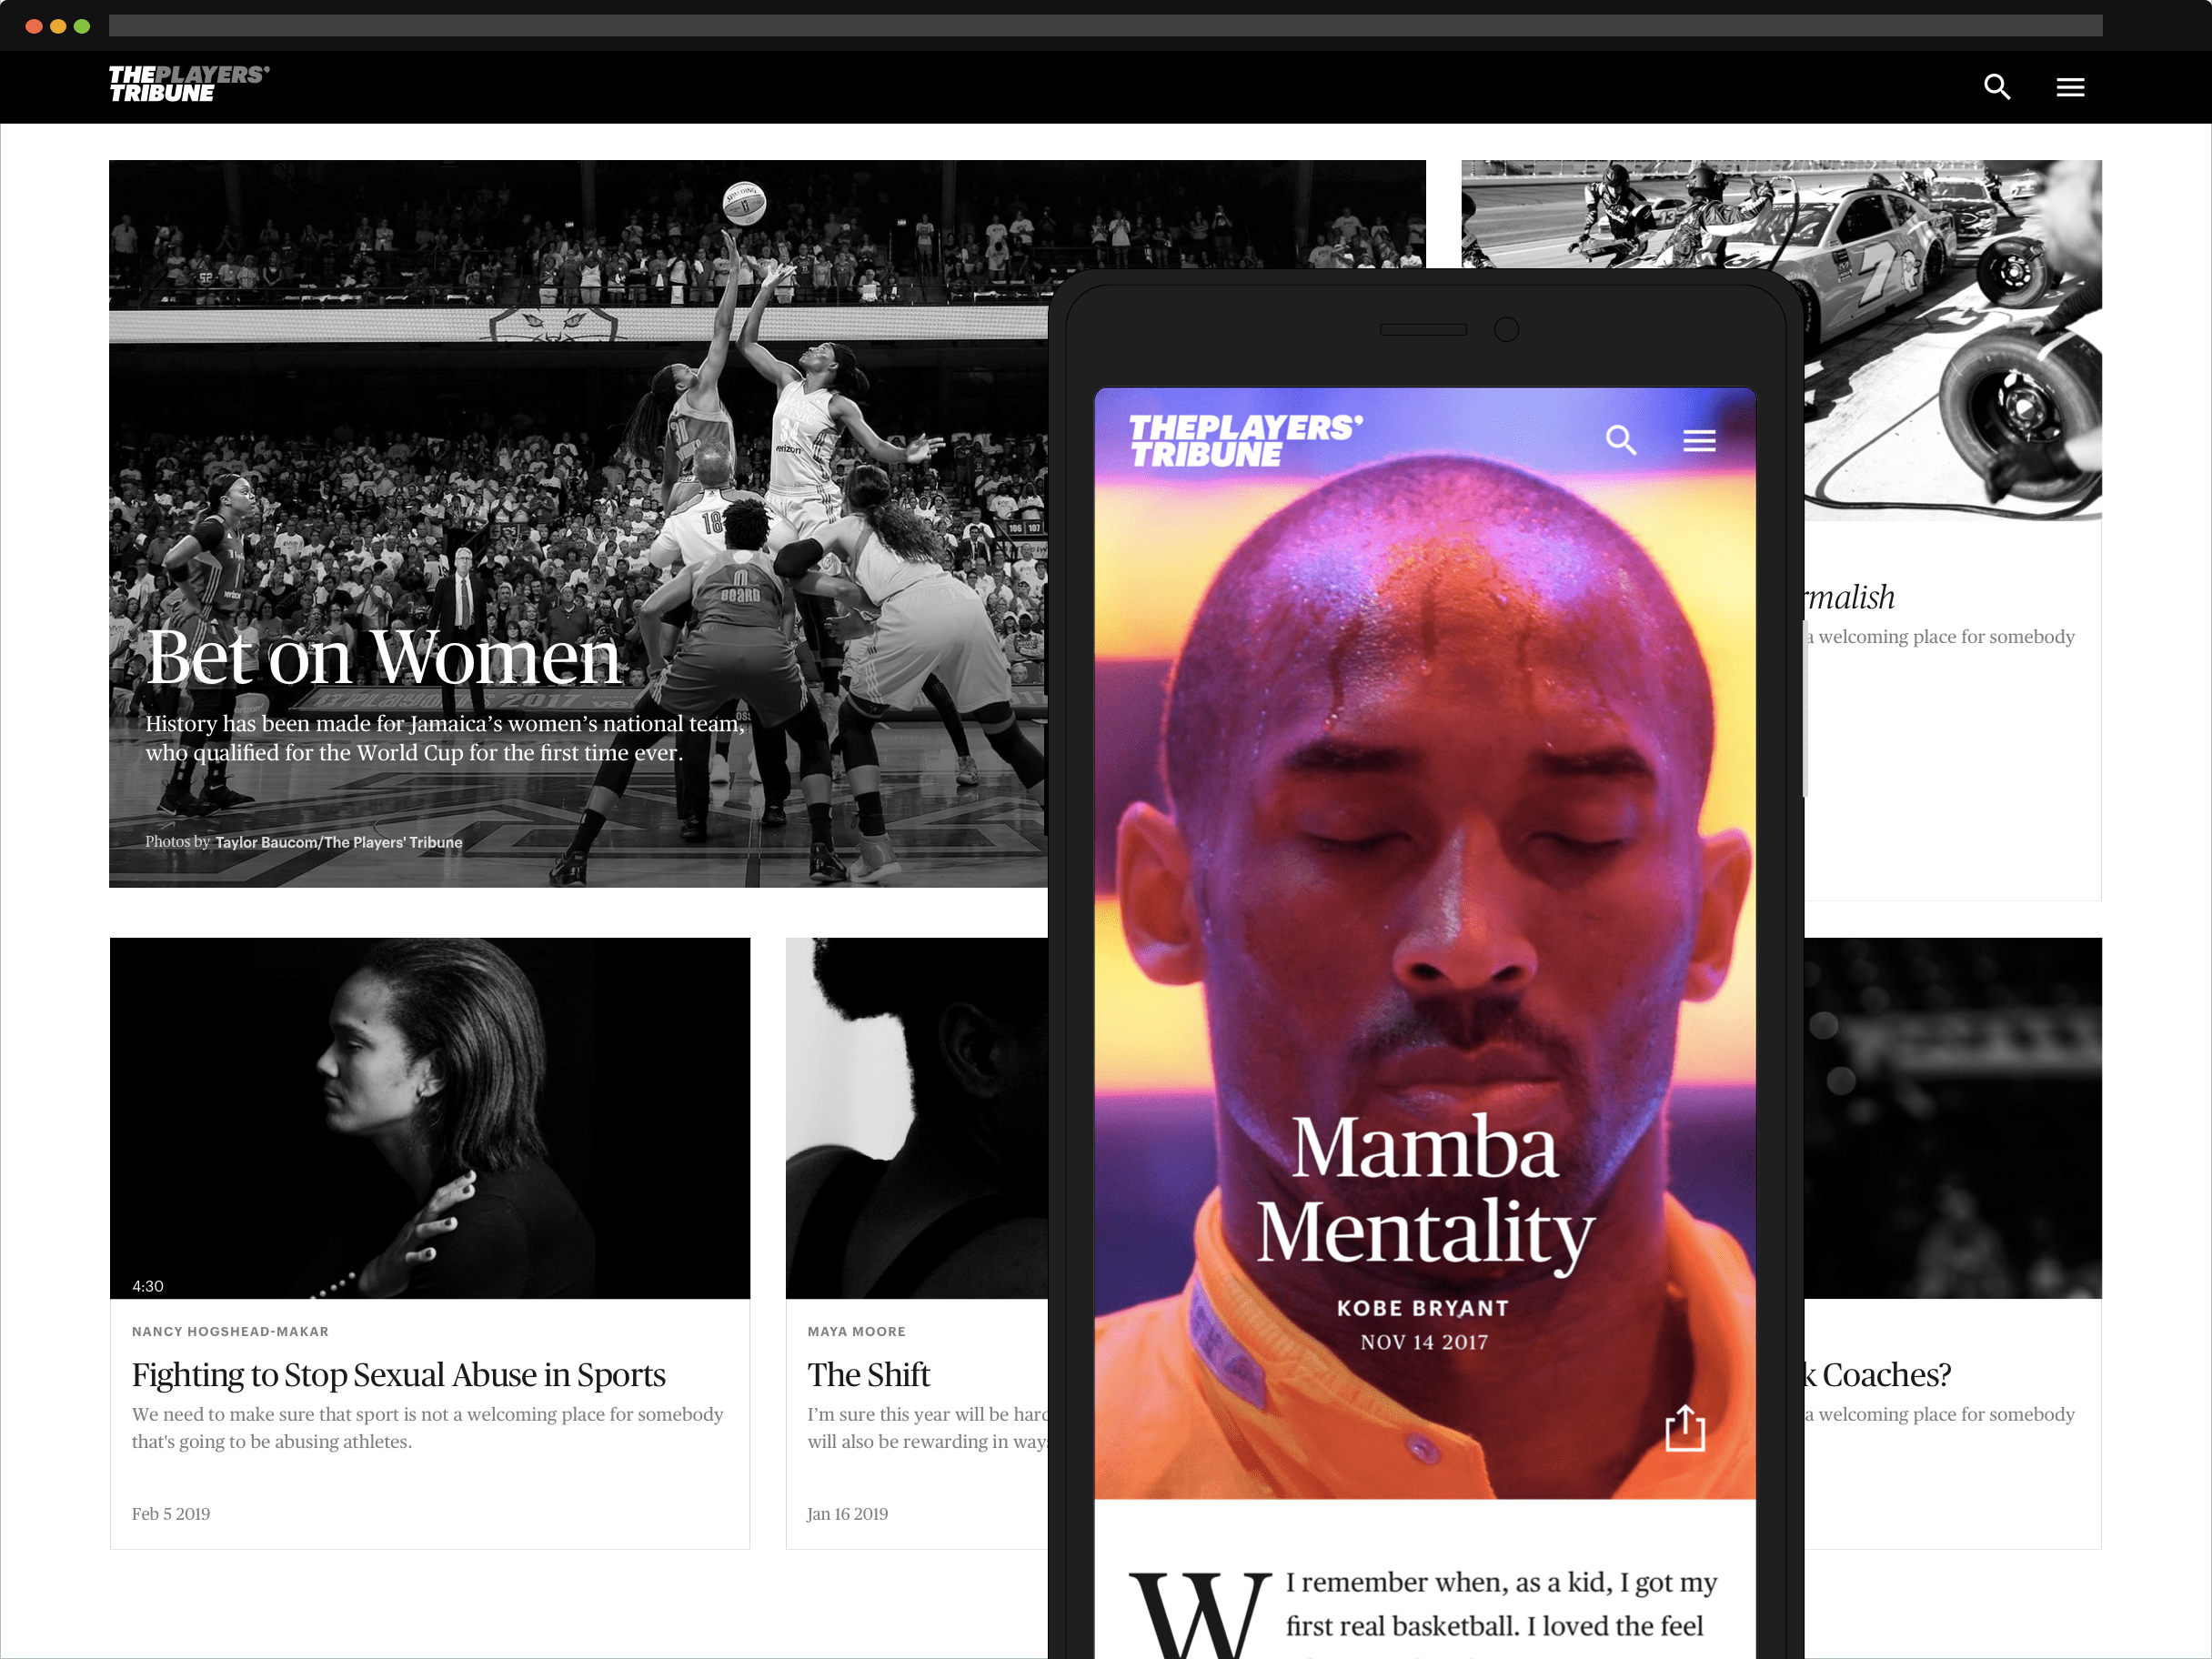 A representation of the Players' Tribune website with a grid of stories featuring photos of prominent athletes including Kobe Bryant.